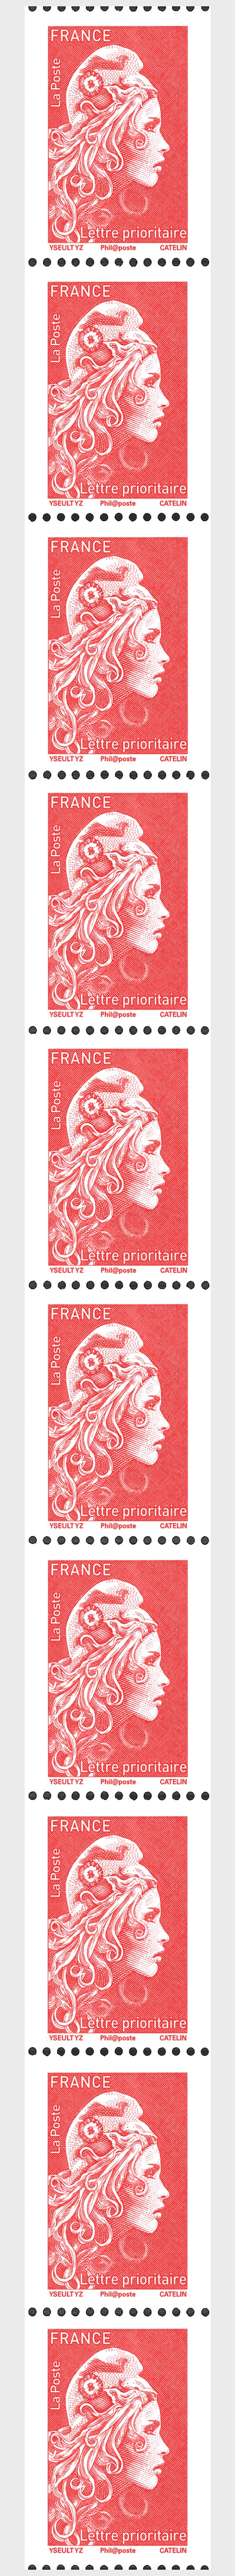 Marianne 2018 - Priority Letter (Single Stamp) - Coil Stamps